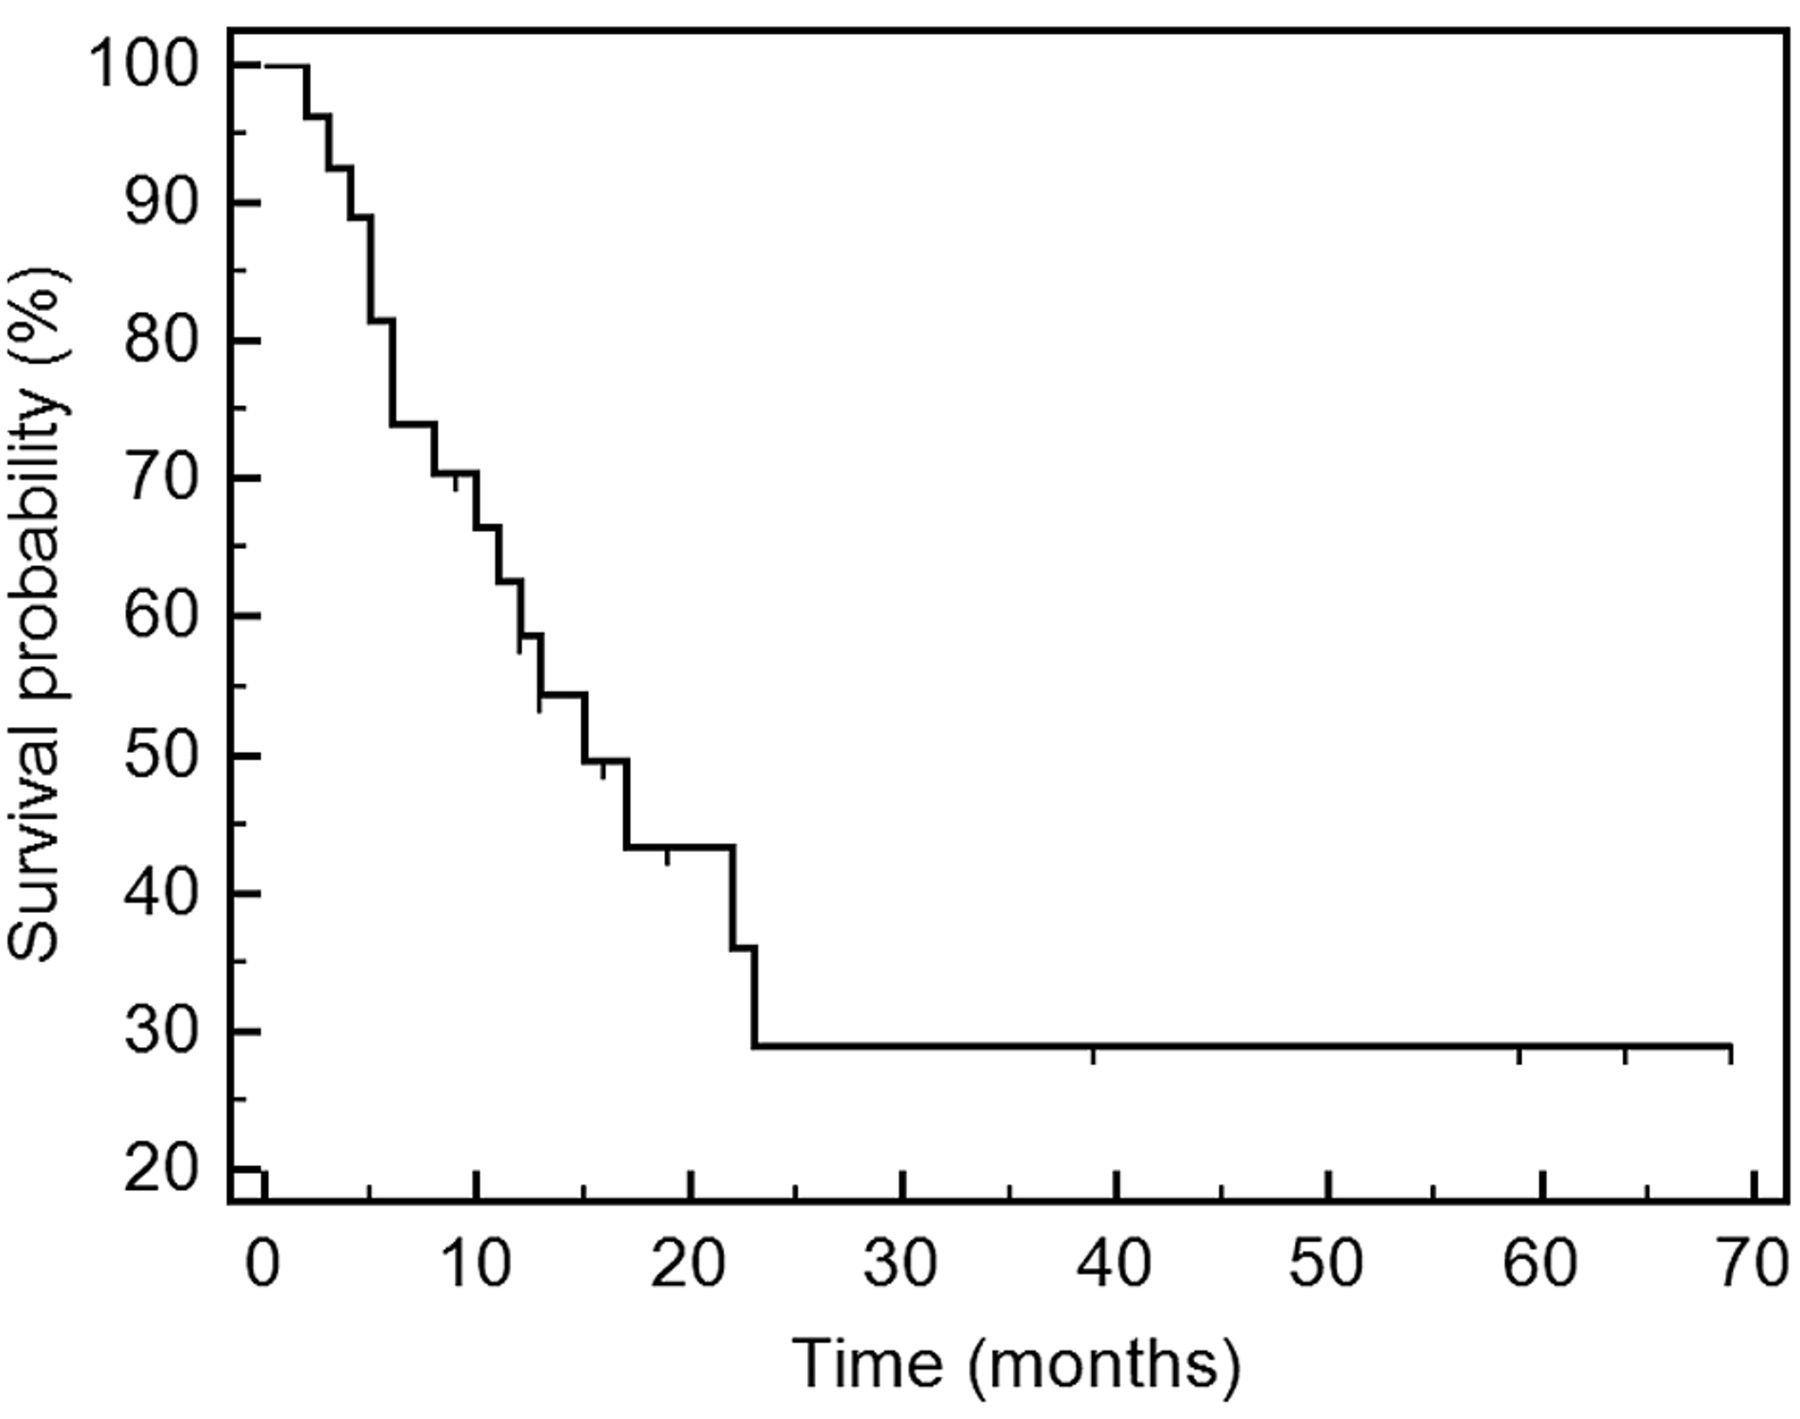 Salvage Chemotherapy Using Gemcitabine For Taxane Platinum Resistant Recurrent Ovarian Cancer A Single Institutional Experience